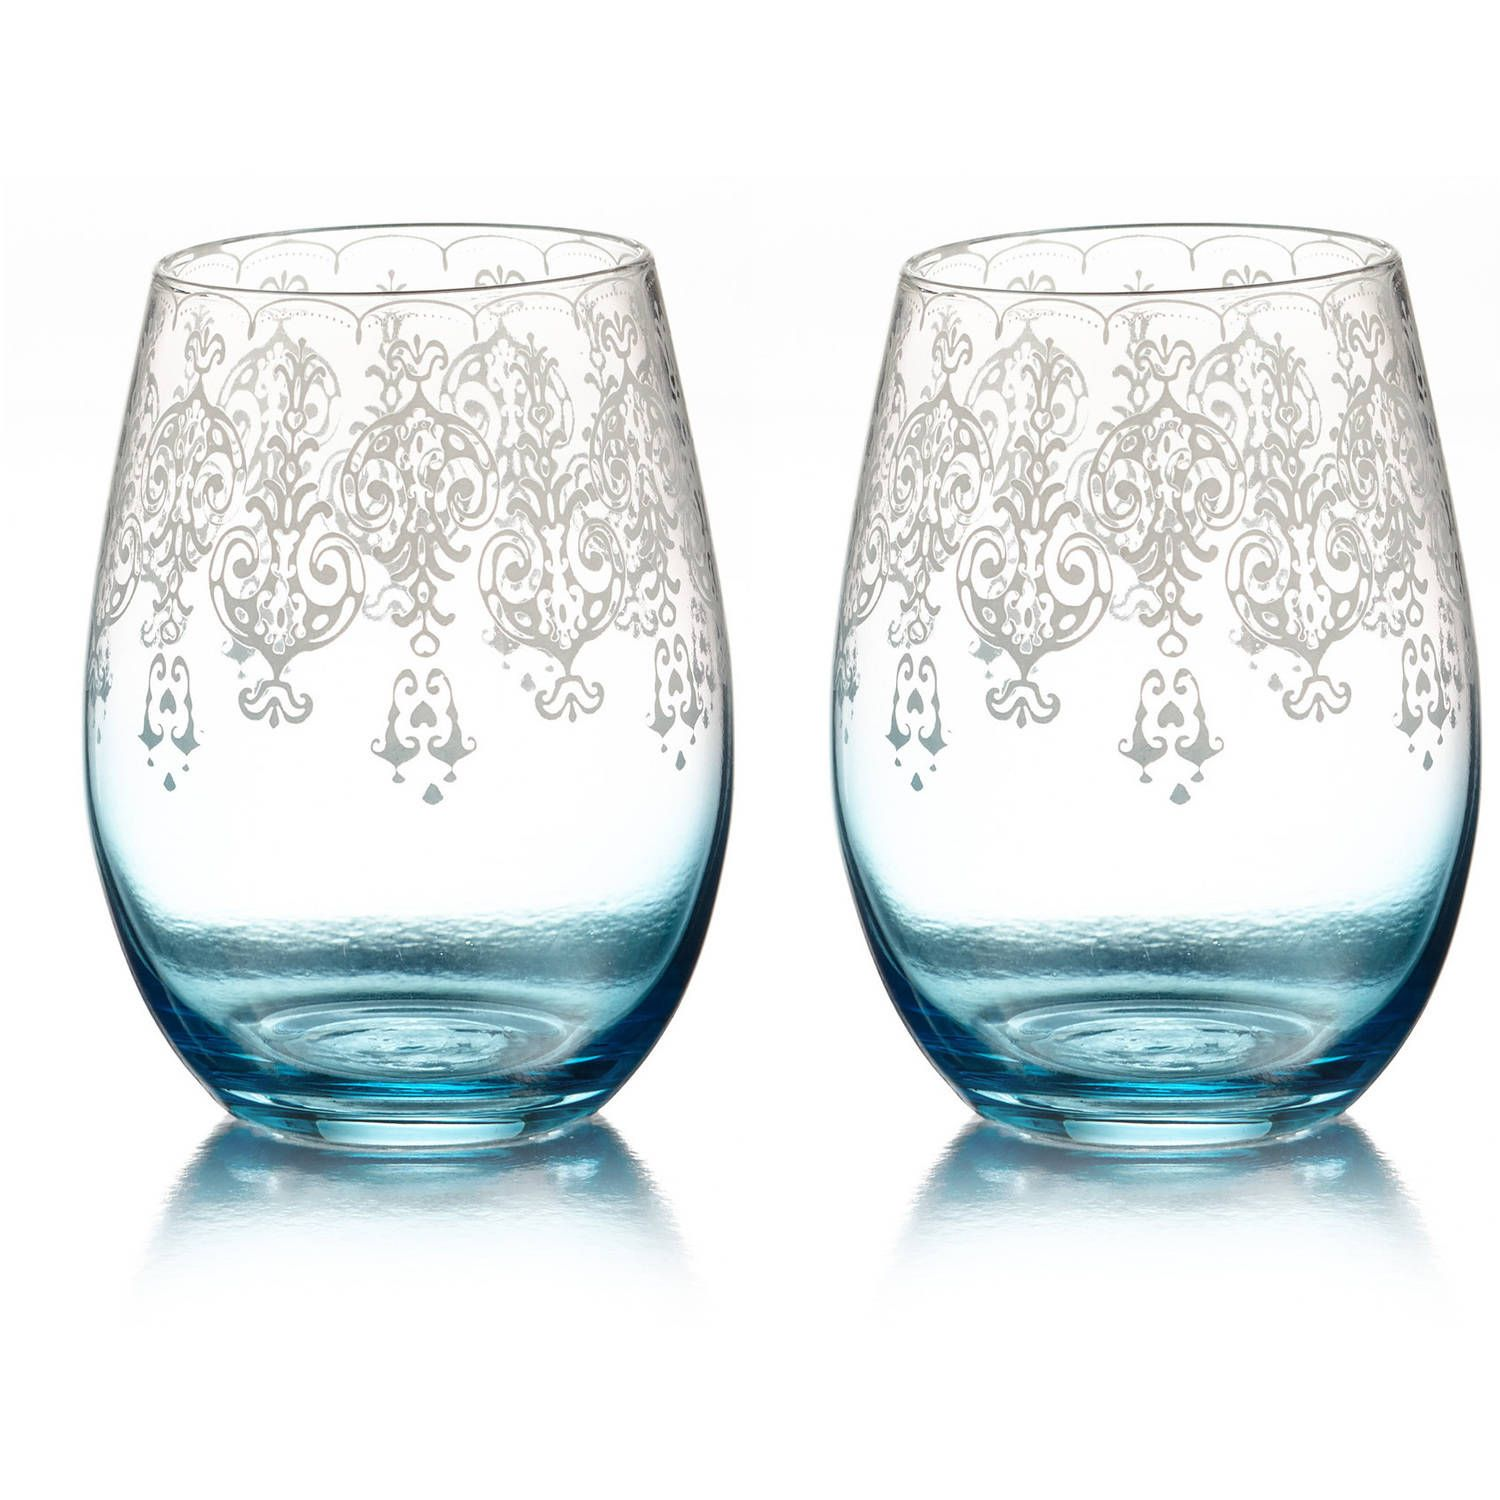 Buy Lace Stemless Glasses, Blue, Set of 2 at Walmart.com - Free ...